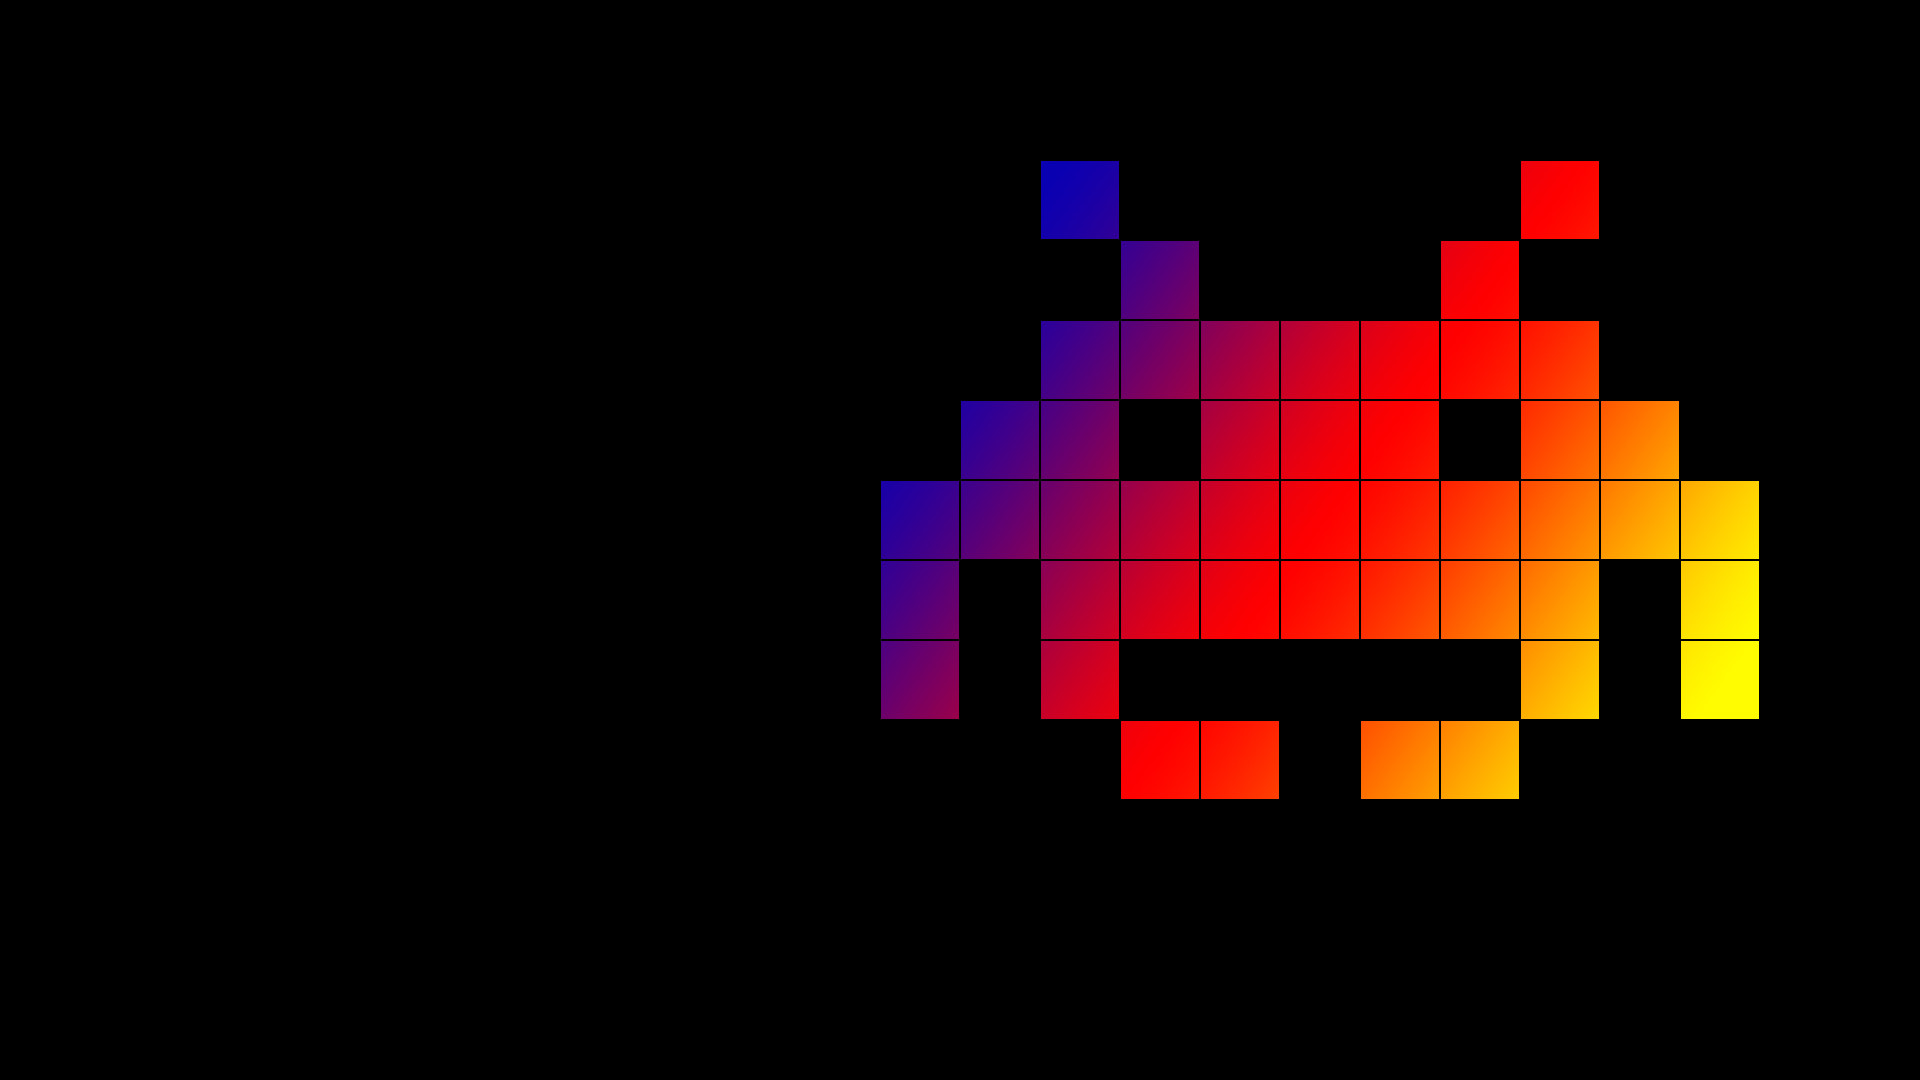 Space Invaders Wallpaper (76+ images)